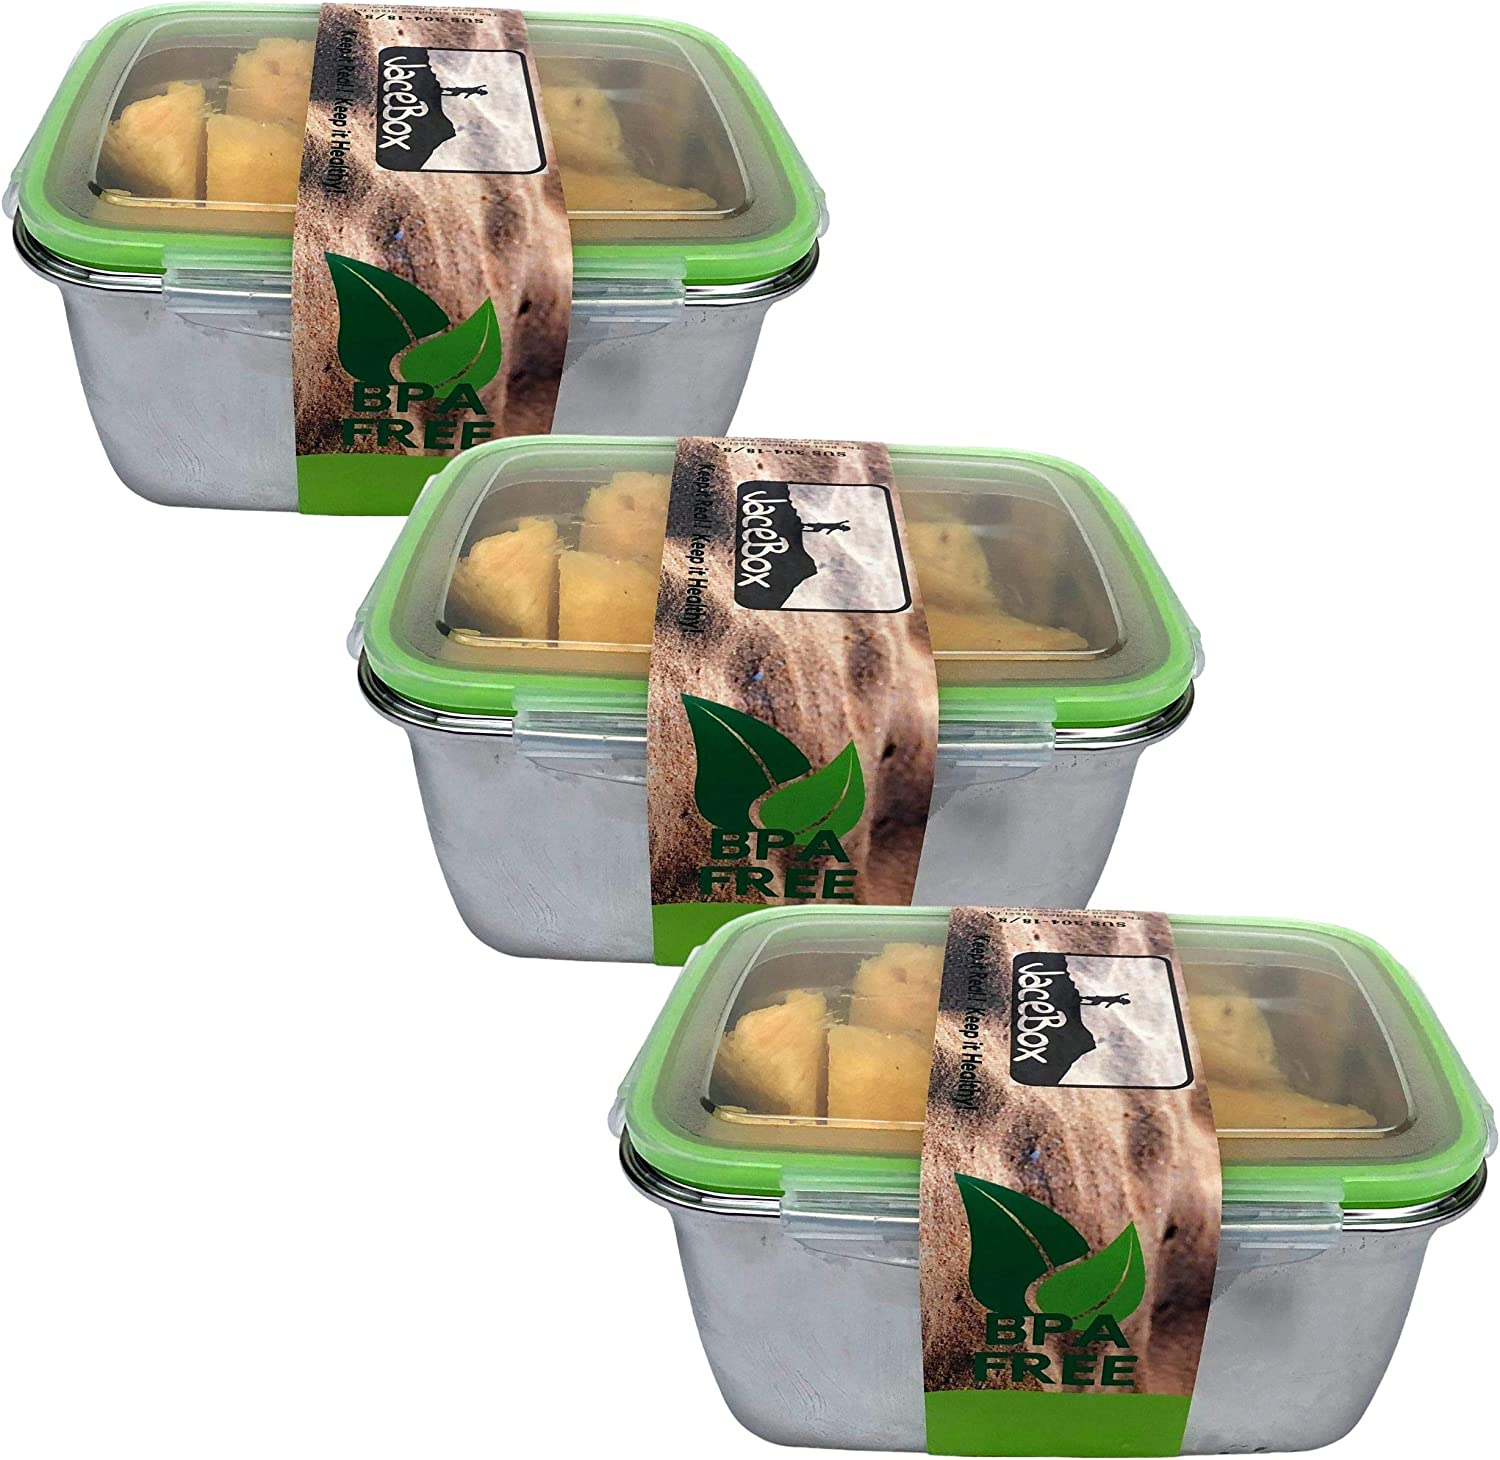 JaceBox XXLARGE Stainless Steel Containers Set of 3 food containers - 2800ml 94oz Food Storage containers BPA FREE Airtight and Leakproof food Boxes. With Snap on Lids BPA FREE